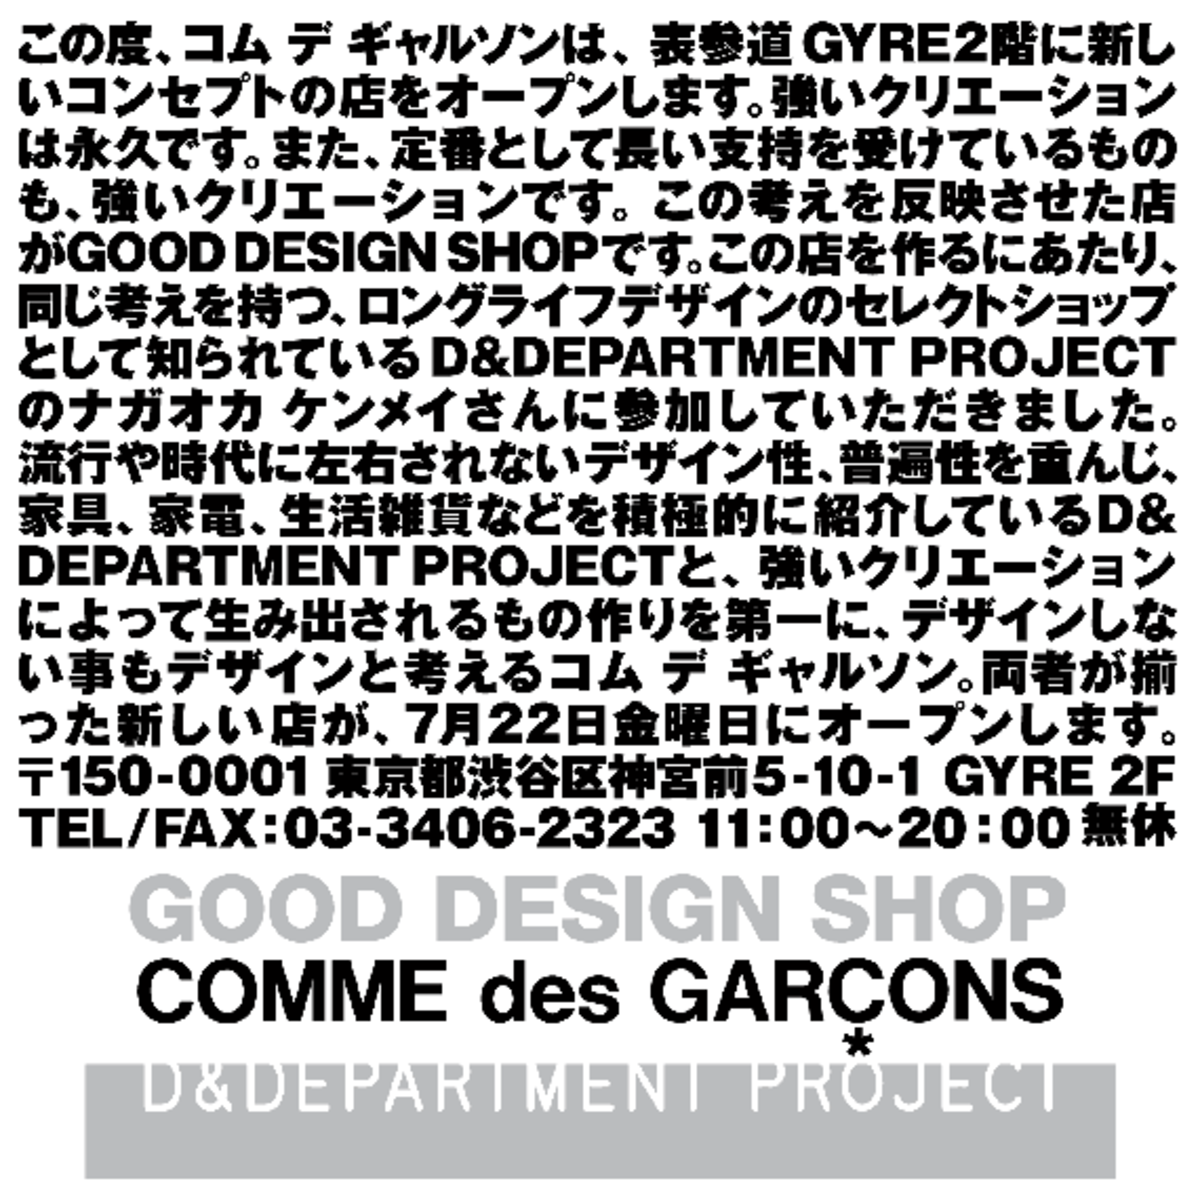 comme-des-garcons-good-design-shop-d-department-01